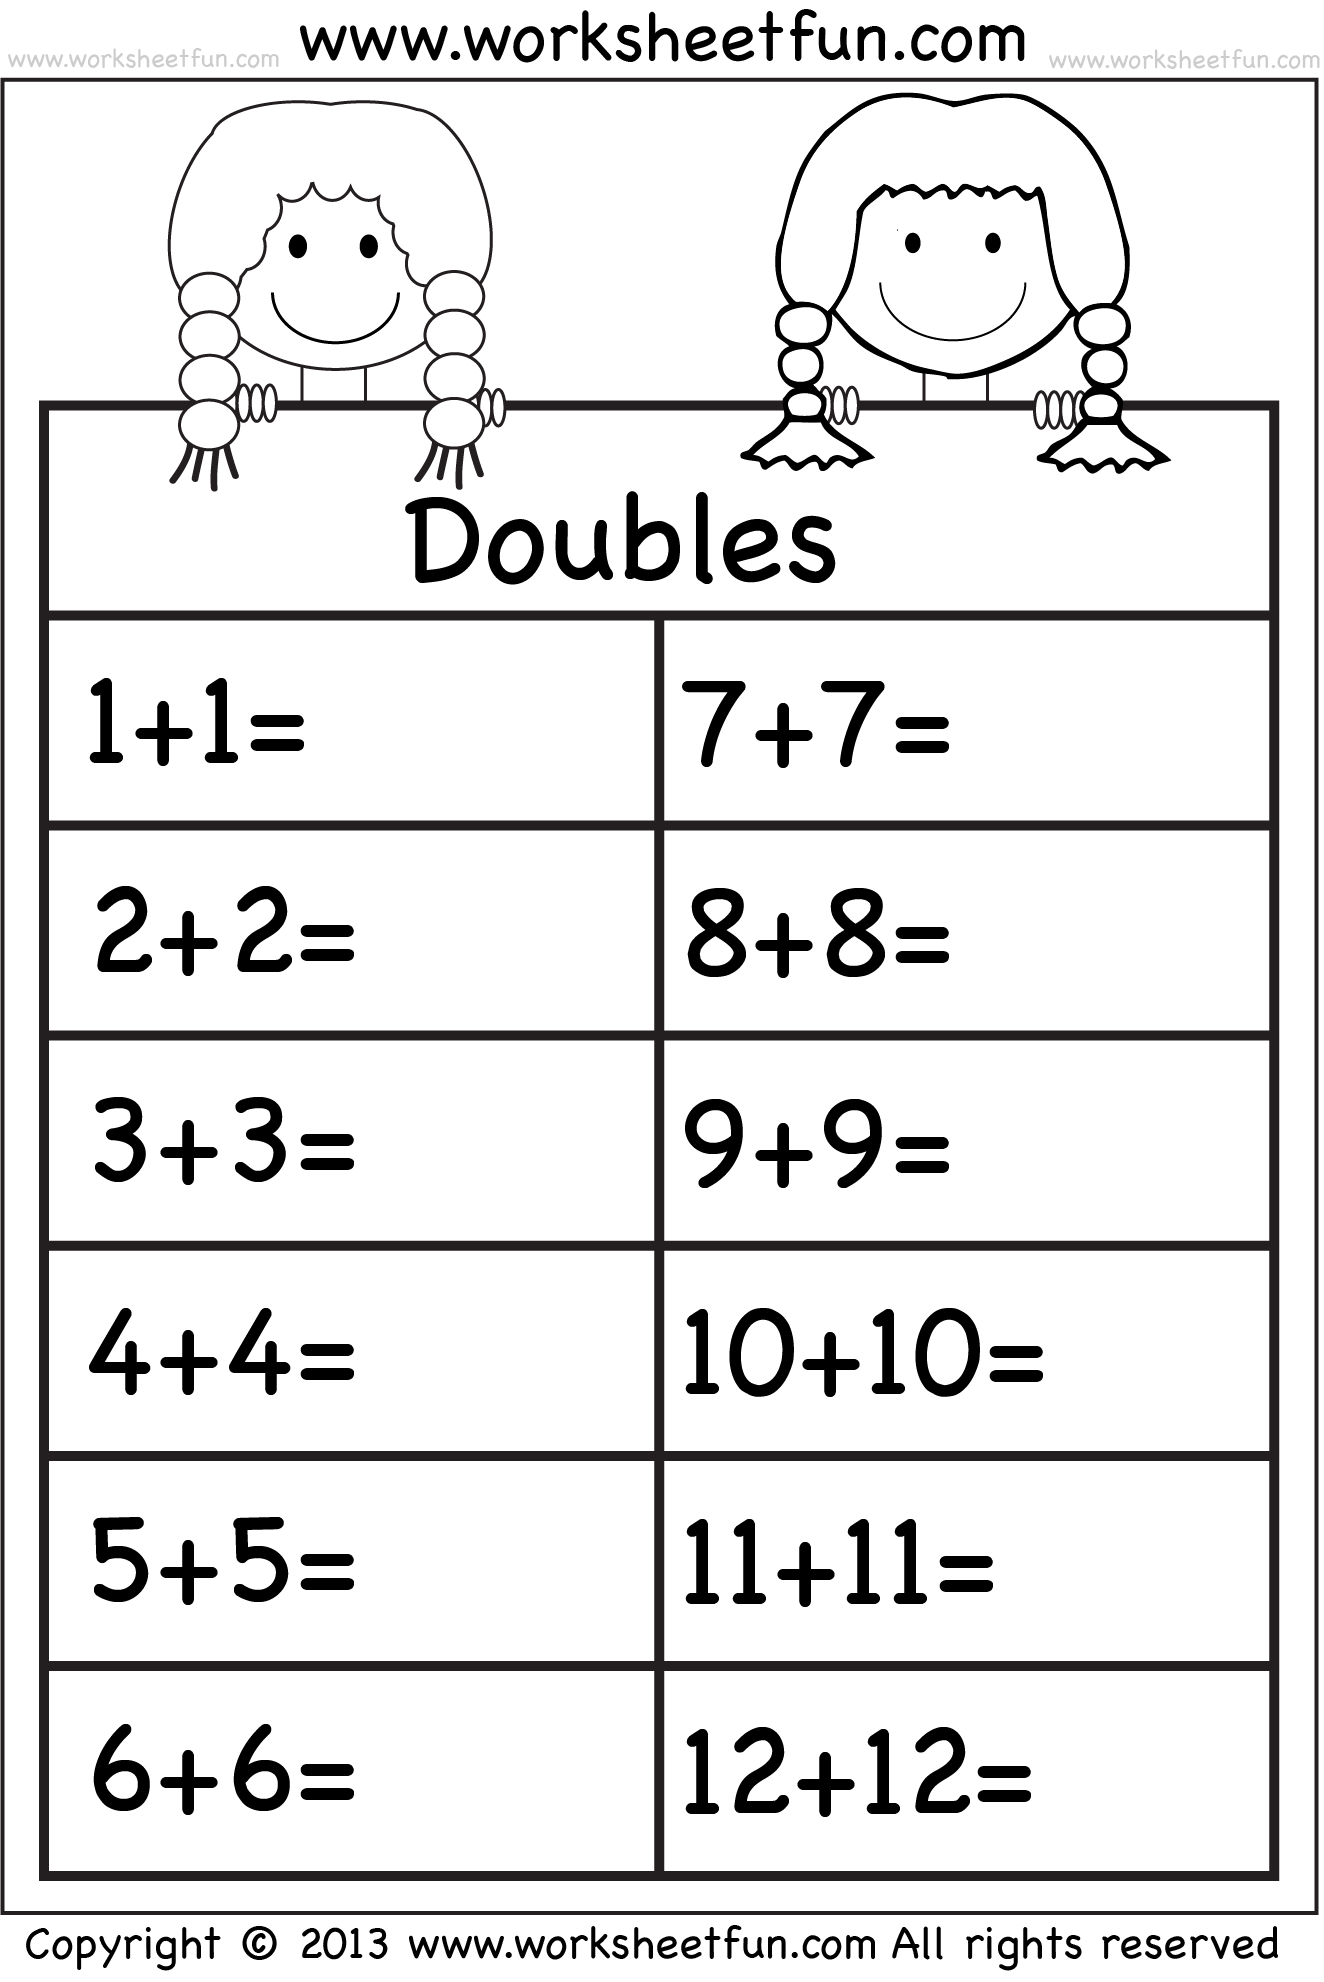 worksheet Doubles Addition Worksheet addition doubles places to visit pinterest maths worksheets doubles